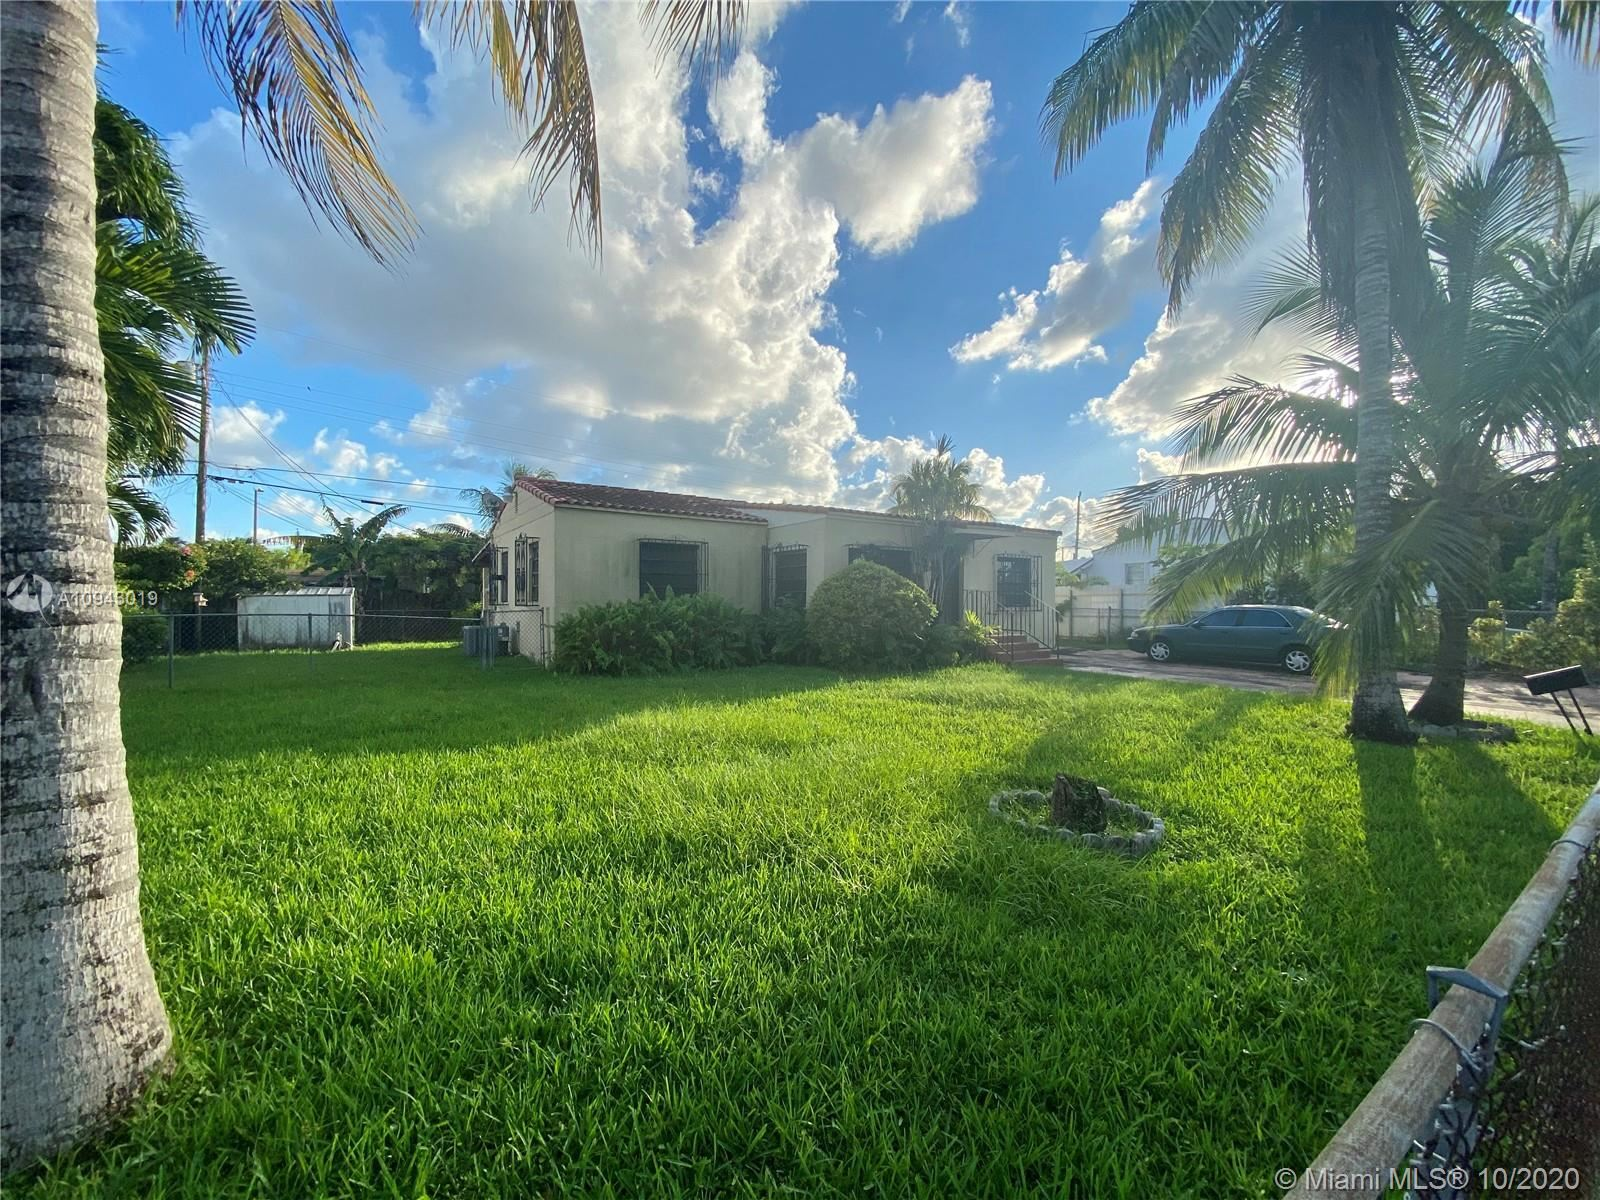 3800 NW 2nd Ter, Miami, FL 33126 - #: A10943019